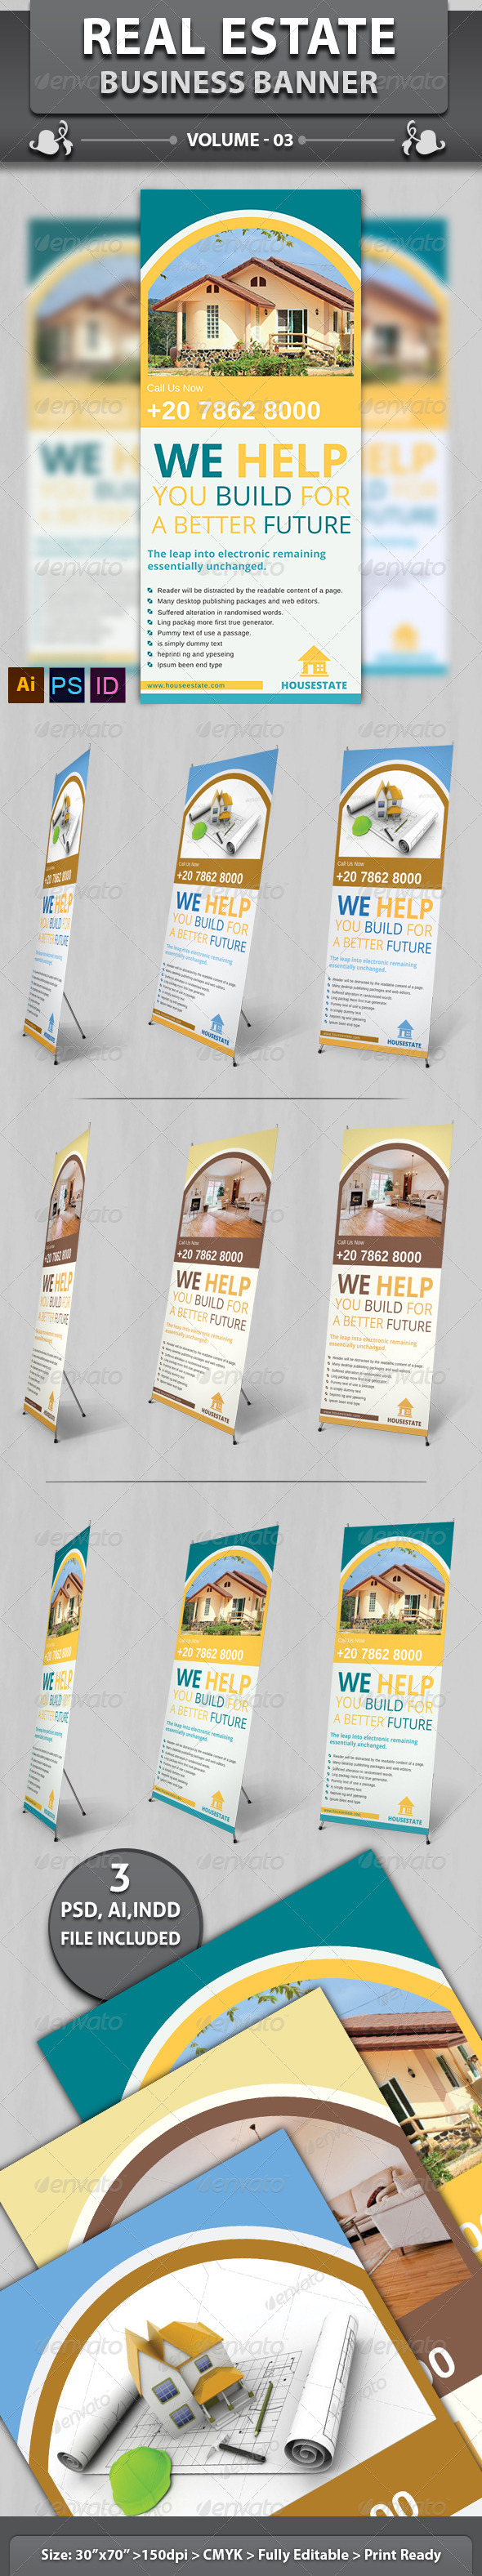 GraphicRiver Real Estate Business Banner Volume 3 6503518